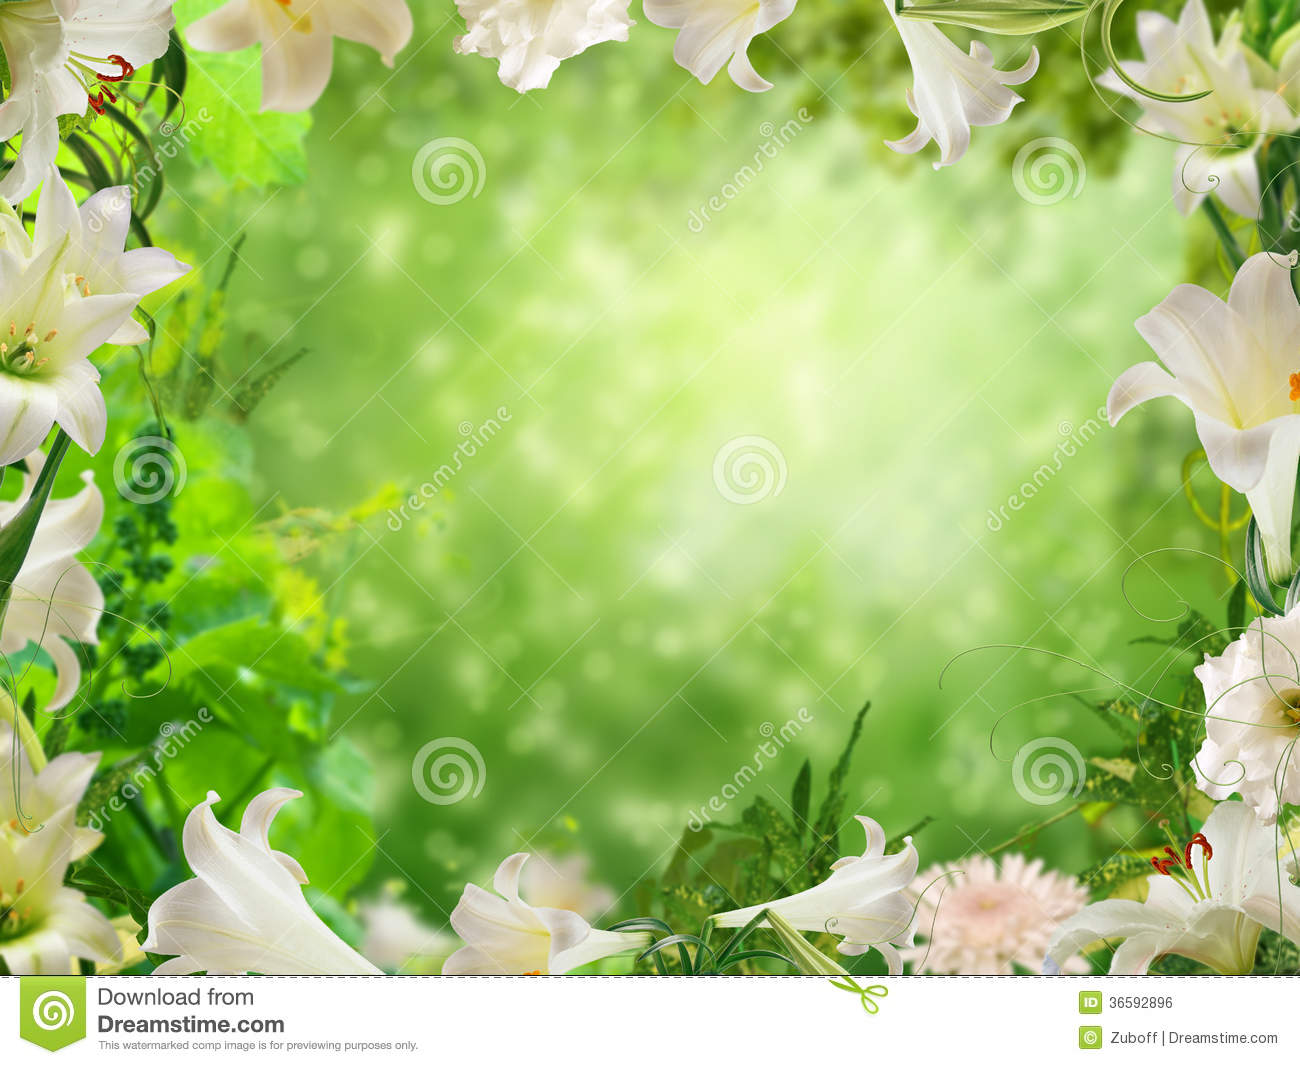 Beautiful flower photo frames choice image flower wallpaper hd old fashioned beautiful flower picture frames elaboration picture contemporary beautiful flower picture frames festooning wedding izmirmasajfo izmirmasajfo